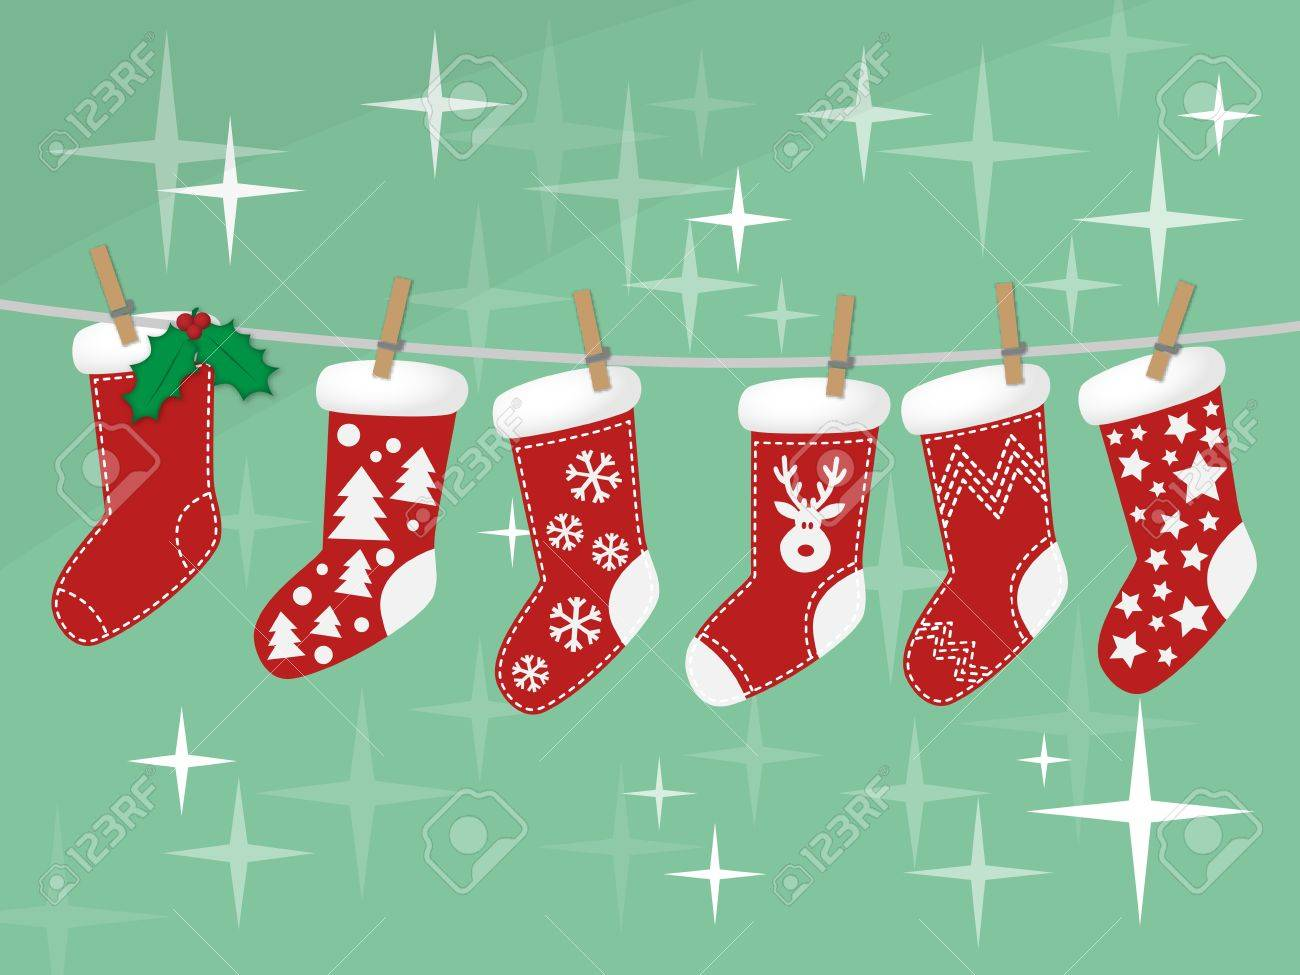 Christmas Socks Hanging On Rope On Green Background